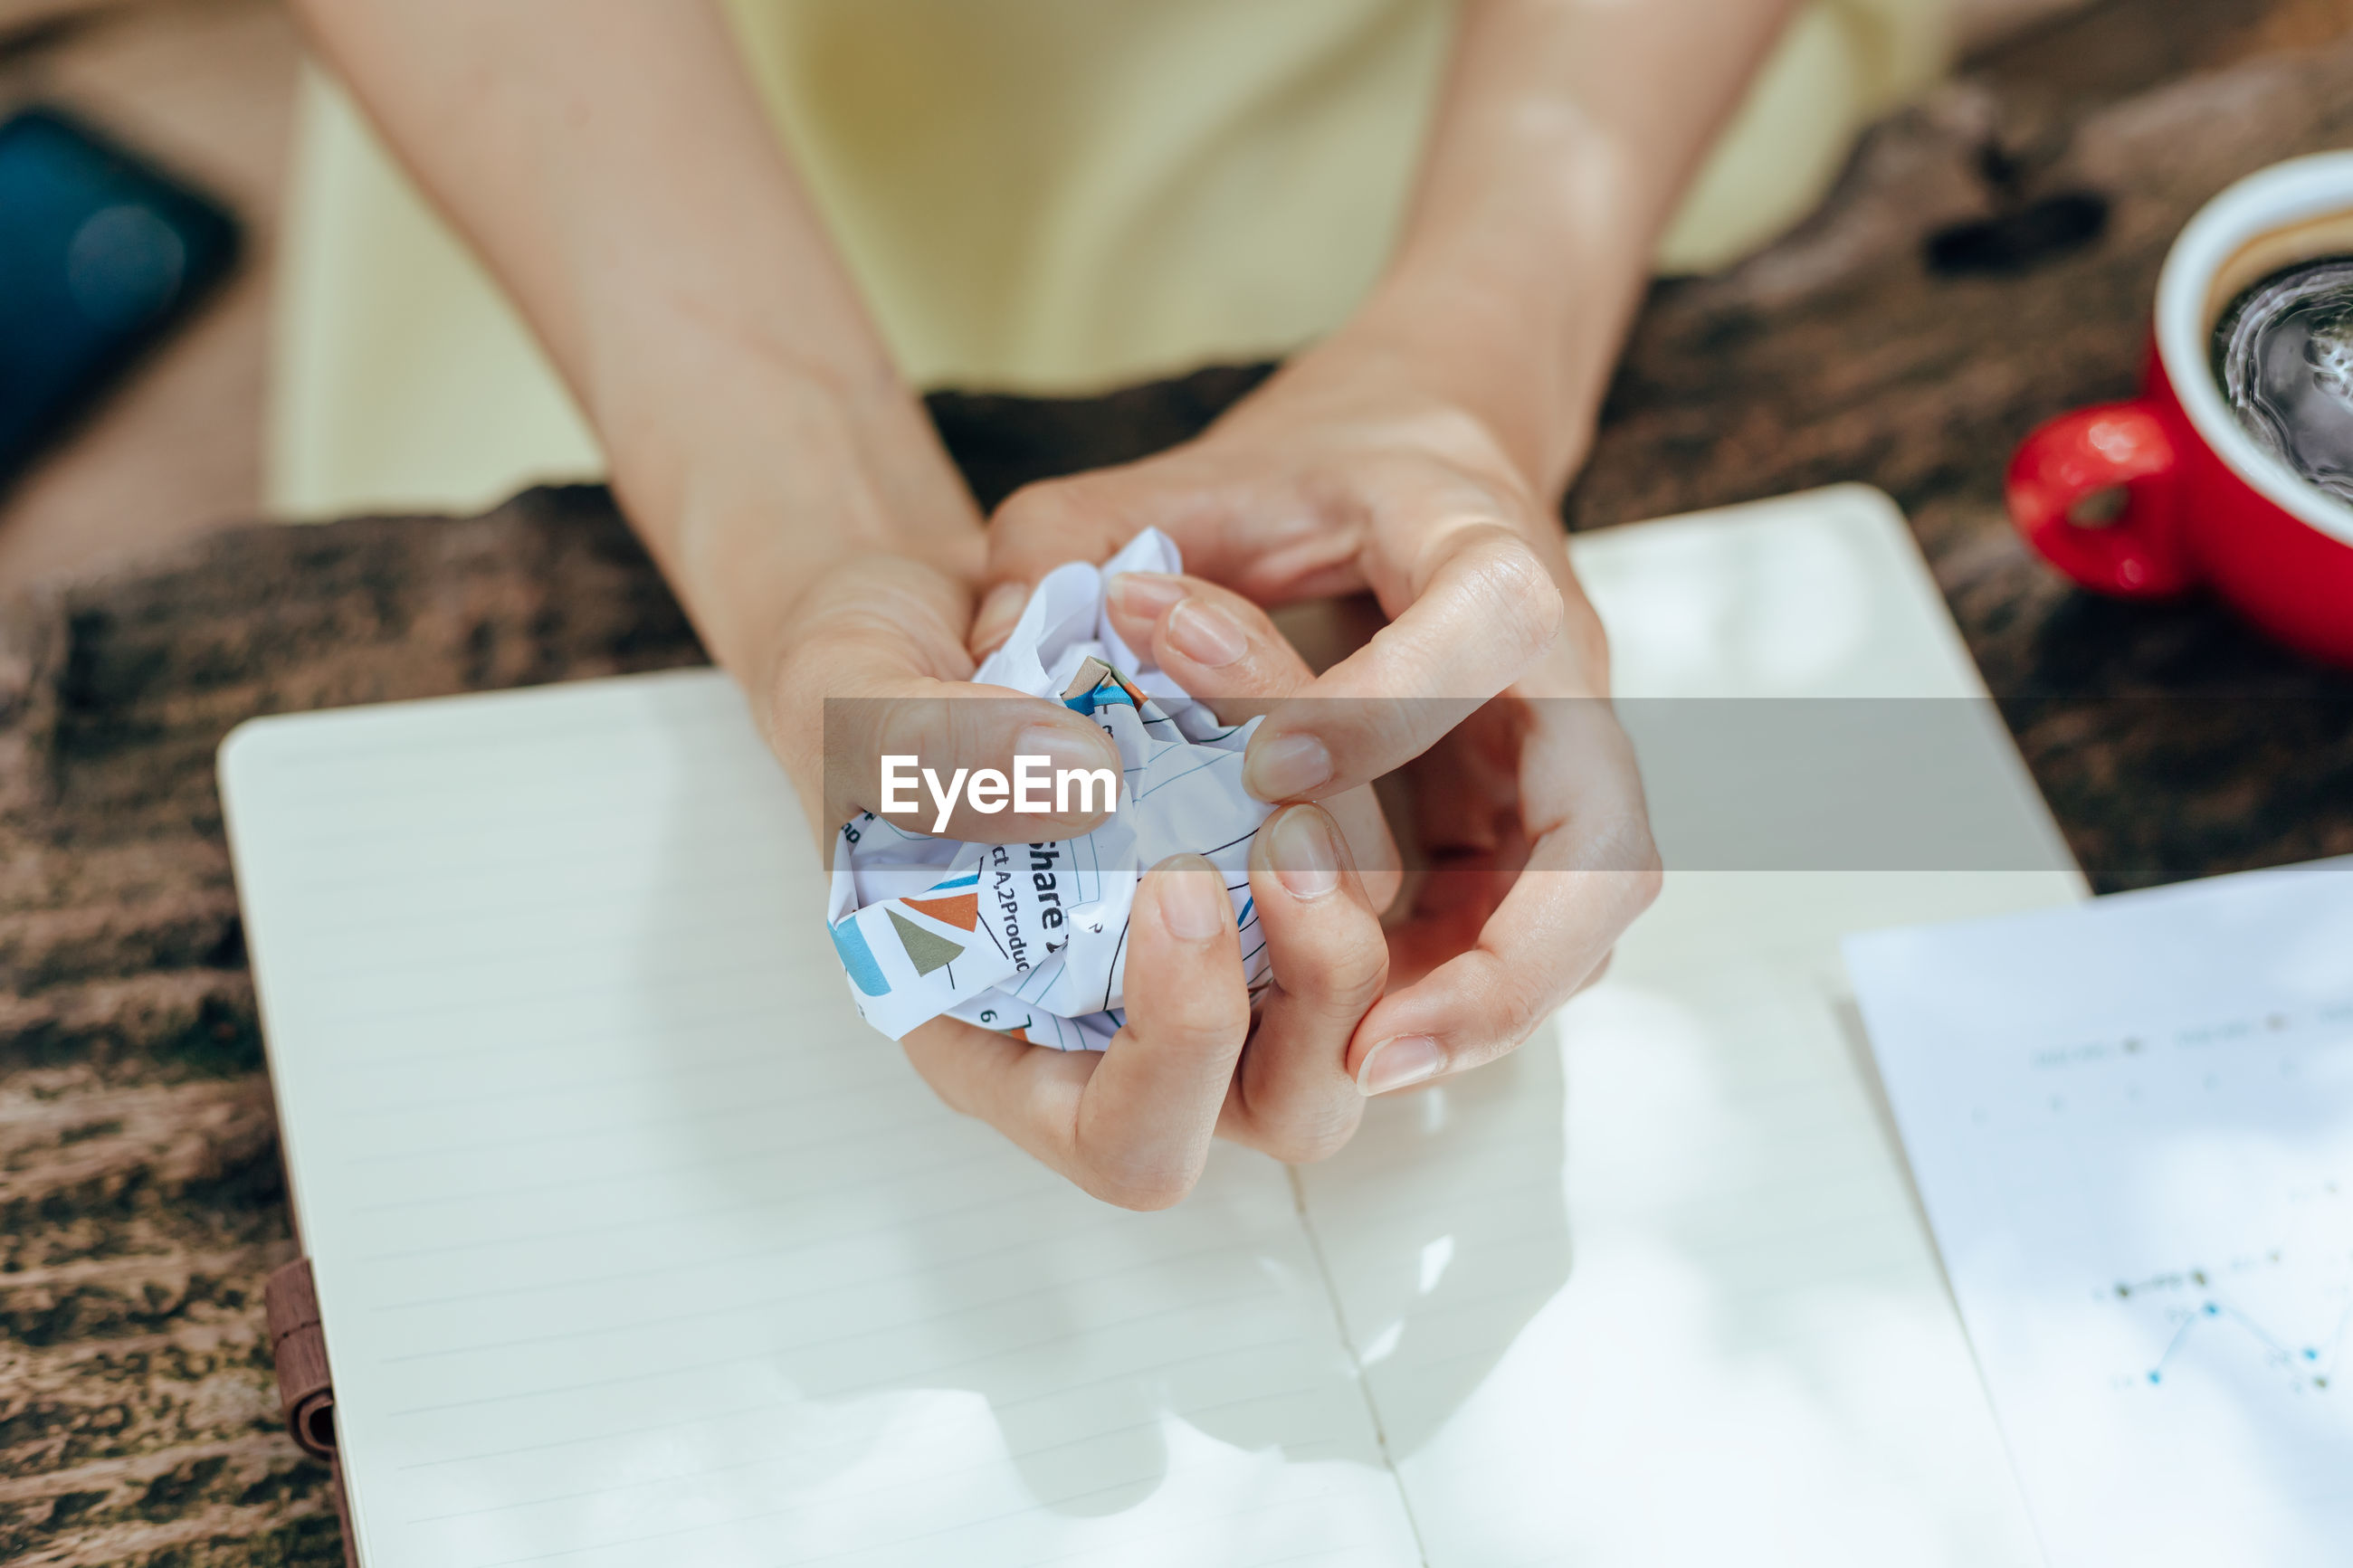 Midsection of woman holding paper with text on white table